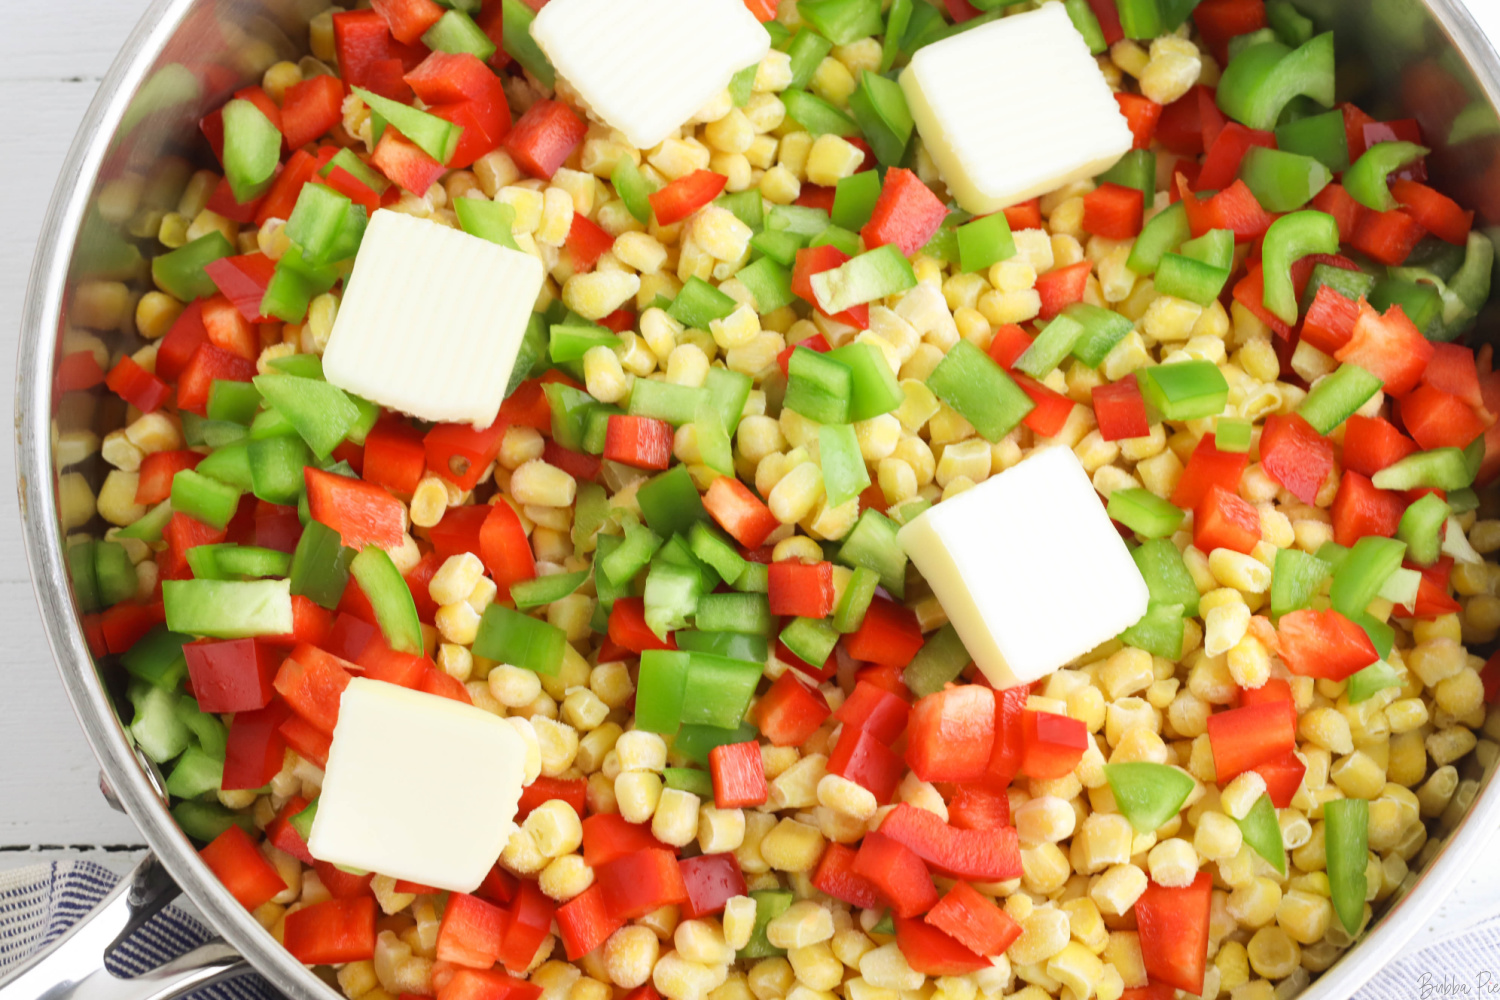 Vegetables and butter in skillet to make fiesta corn.